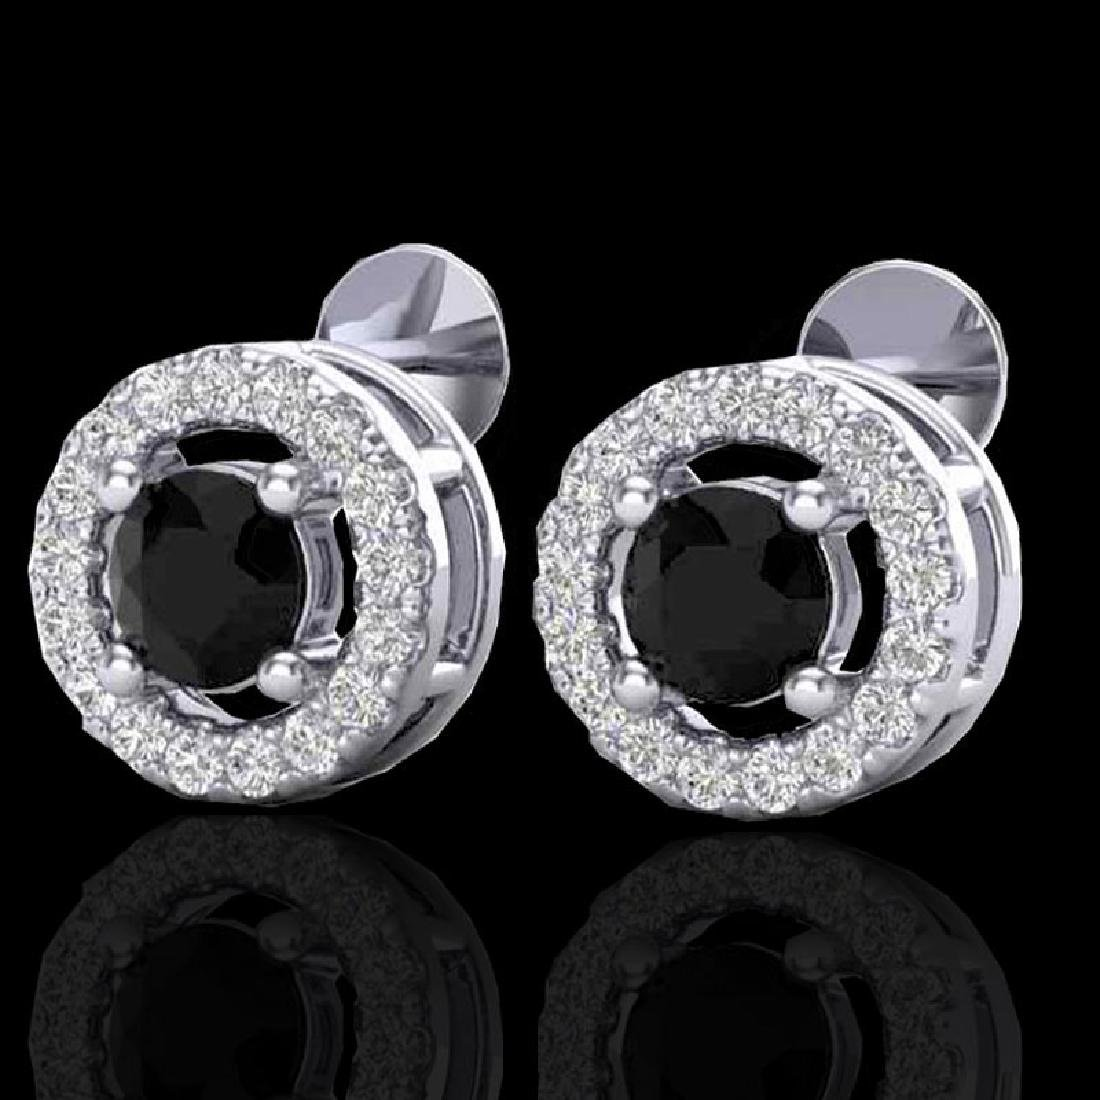 0.75 CTW Micro Pave VS/SI Diamond Earrings Halo 18K